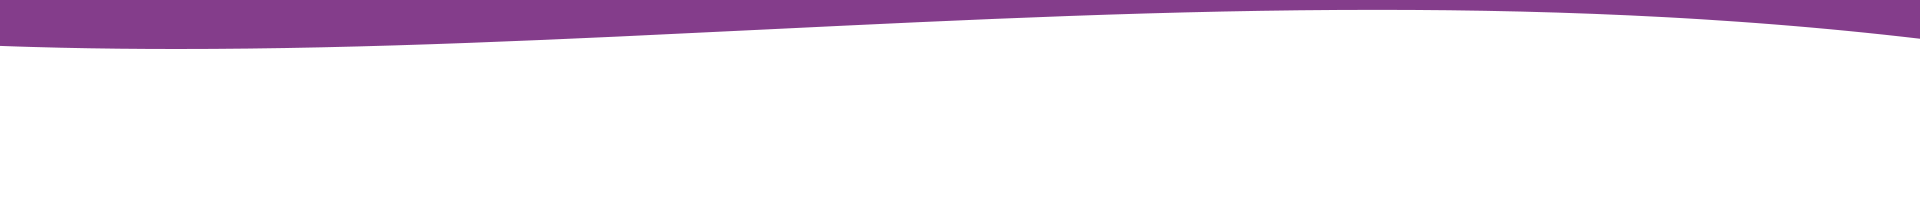 shape-header-PURPLE.png